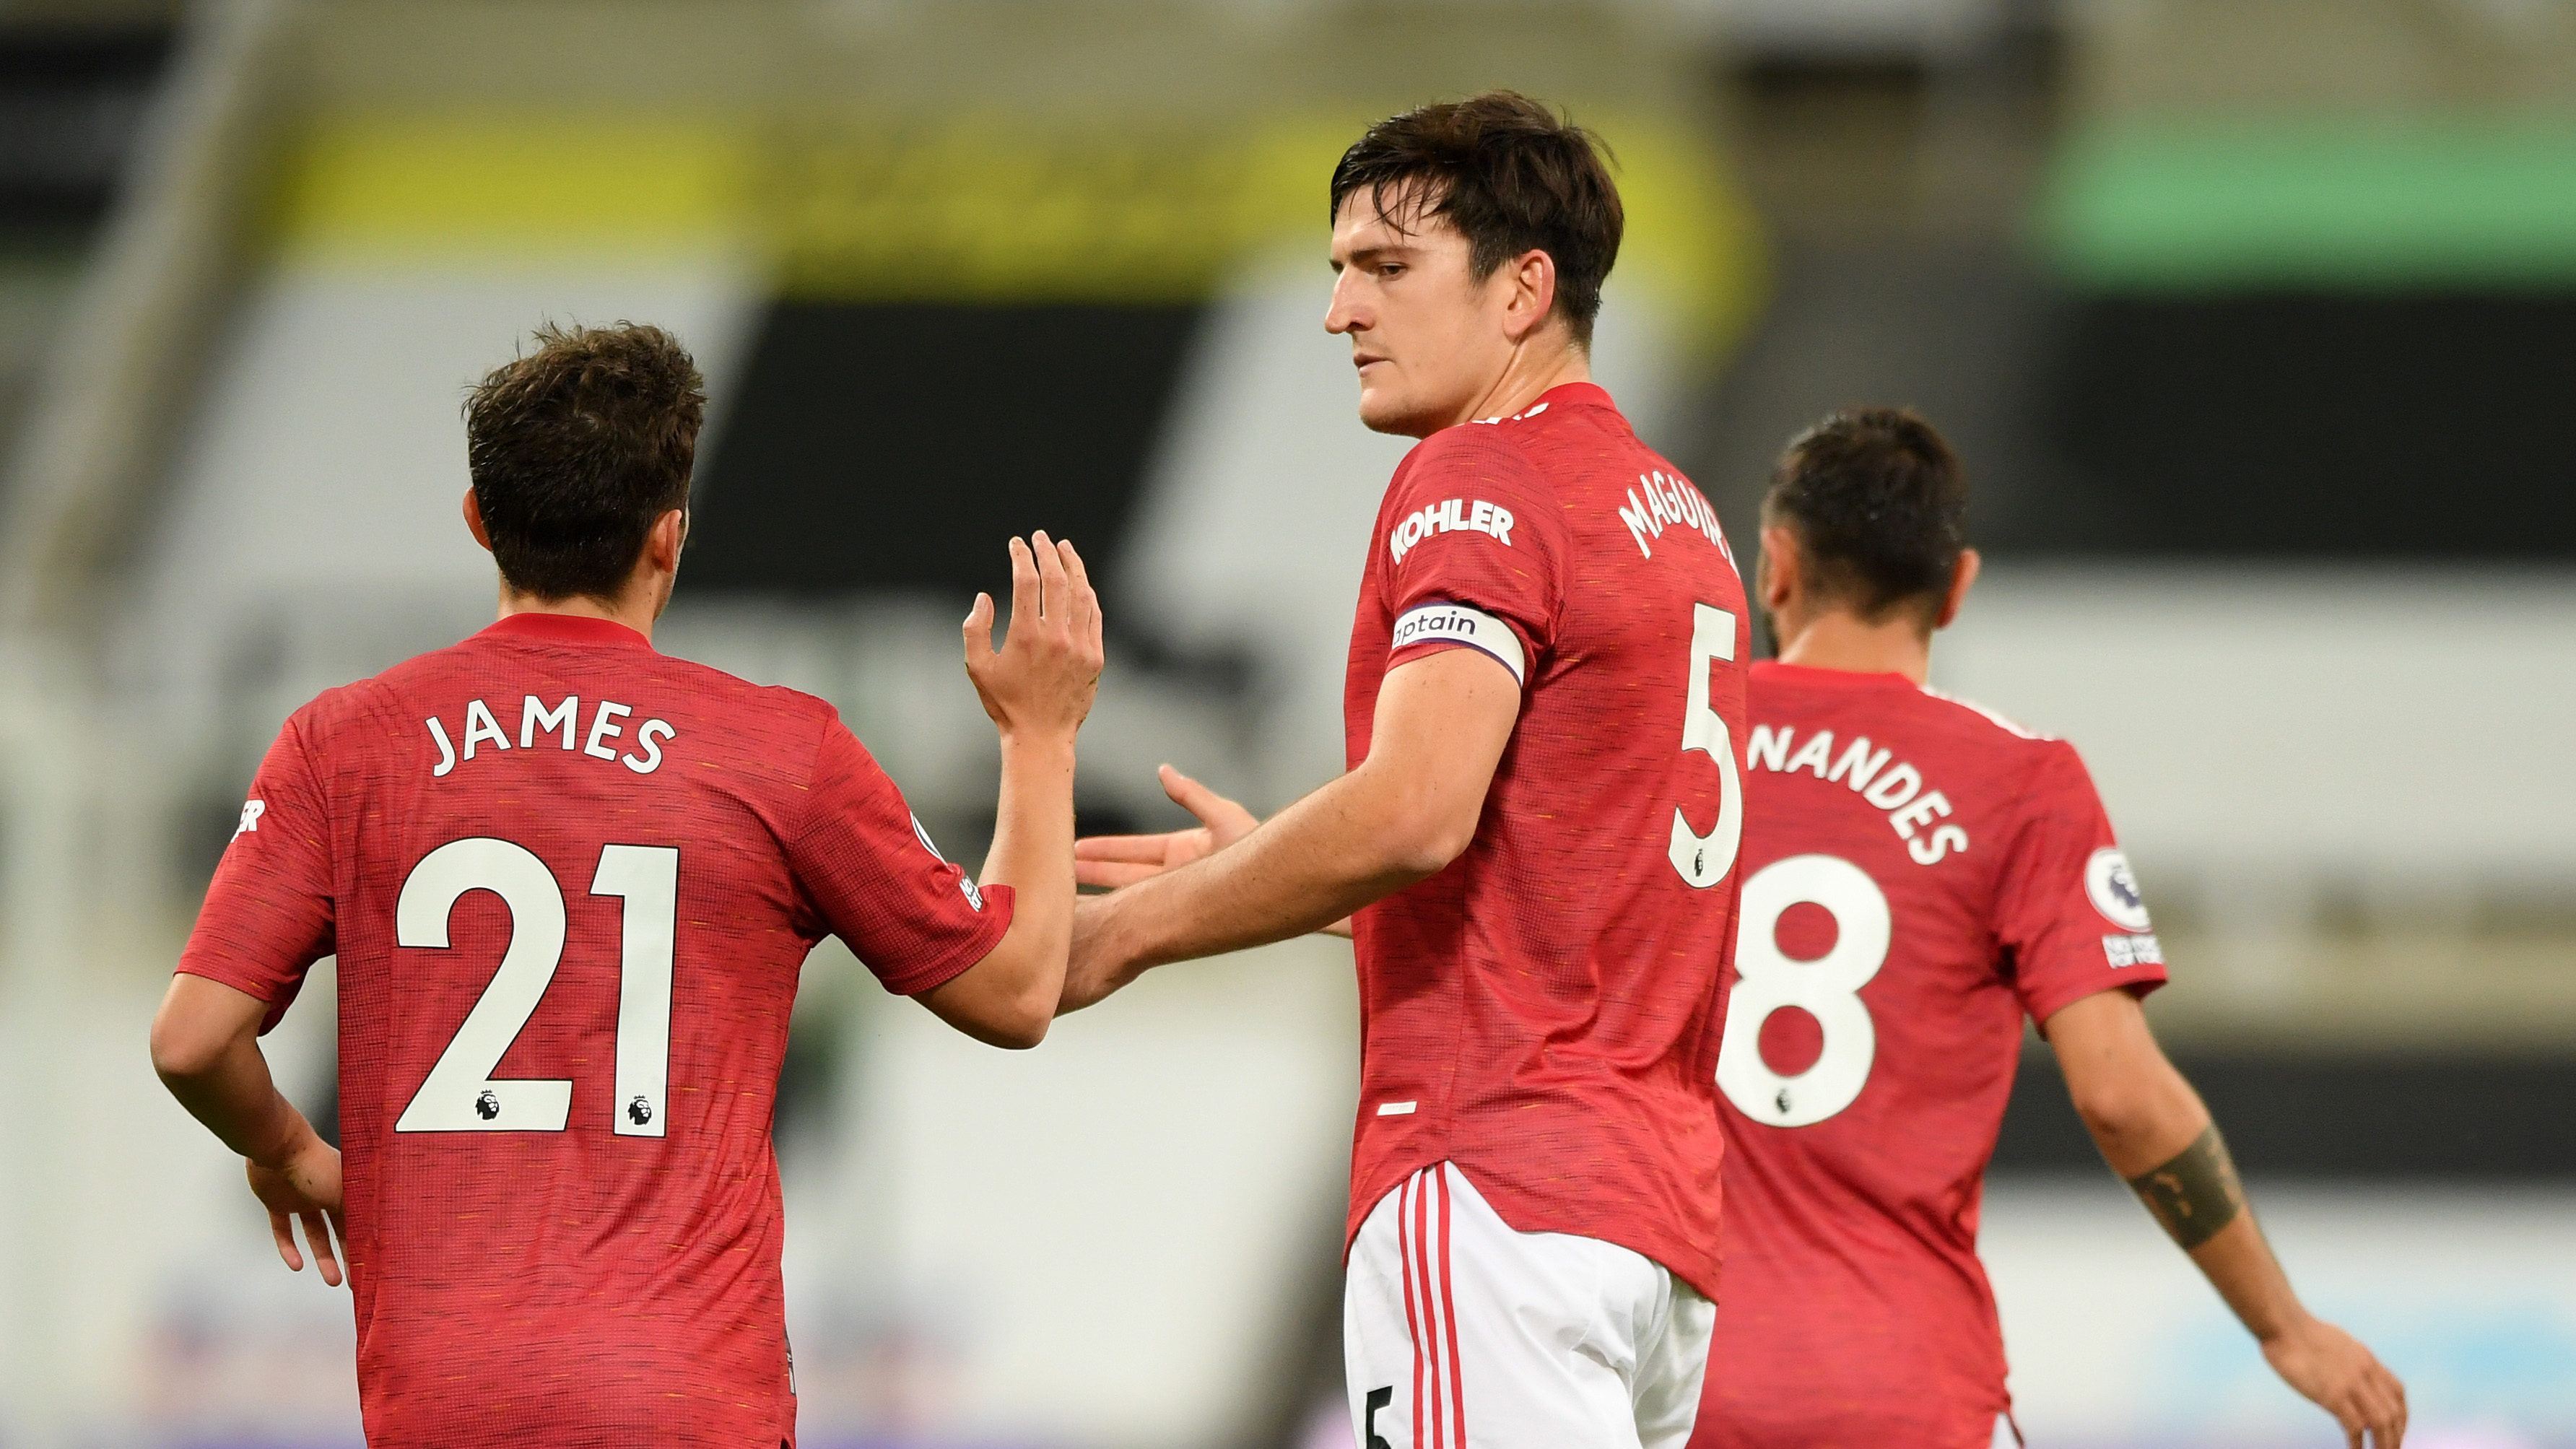 Bruno Fernandes: Manchester United showed character to bounce back